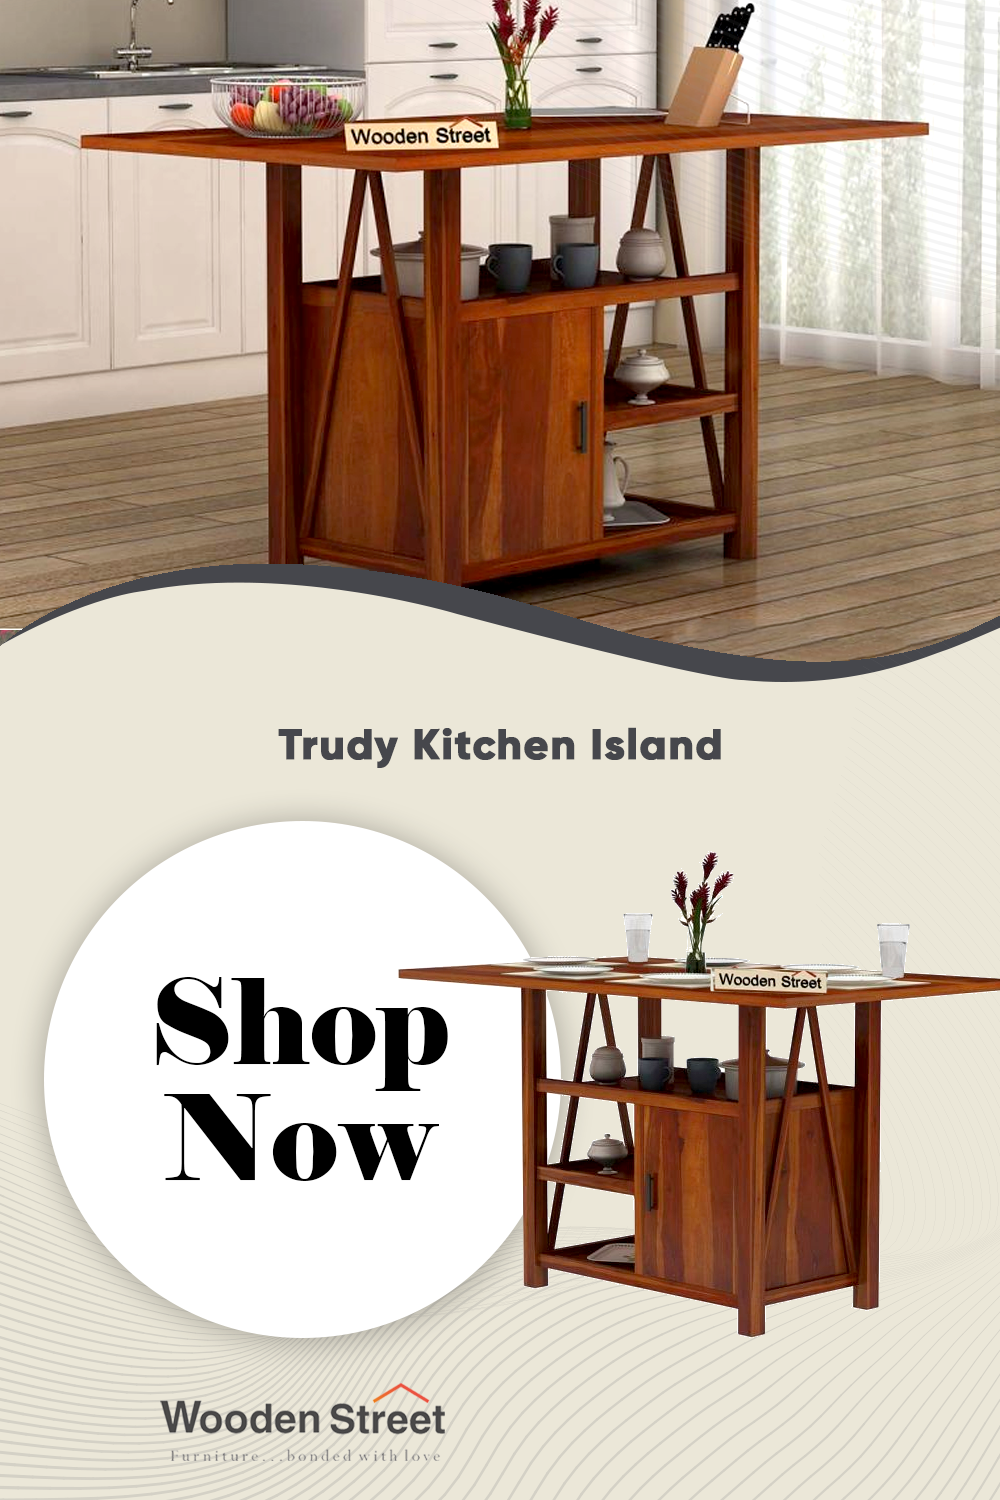 Buy Trudy Kitchen Island Online In India Wooden Street In 2021 Wooden Street Home Decor Dining Room Furniture